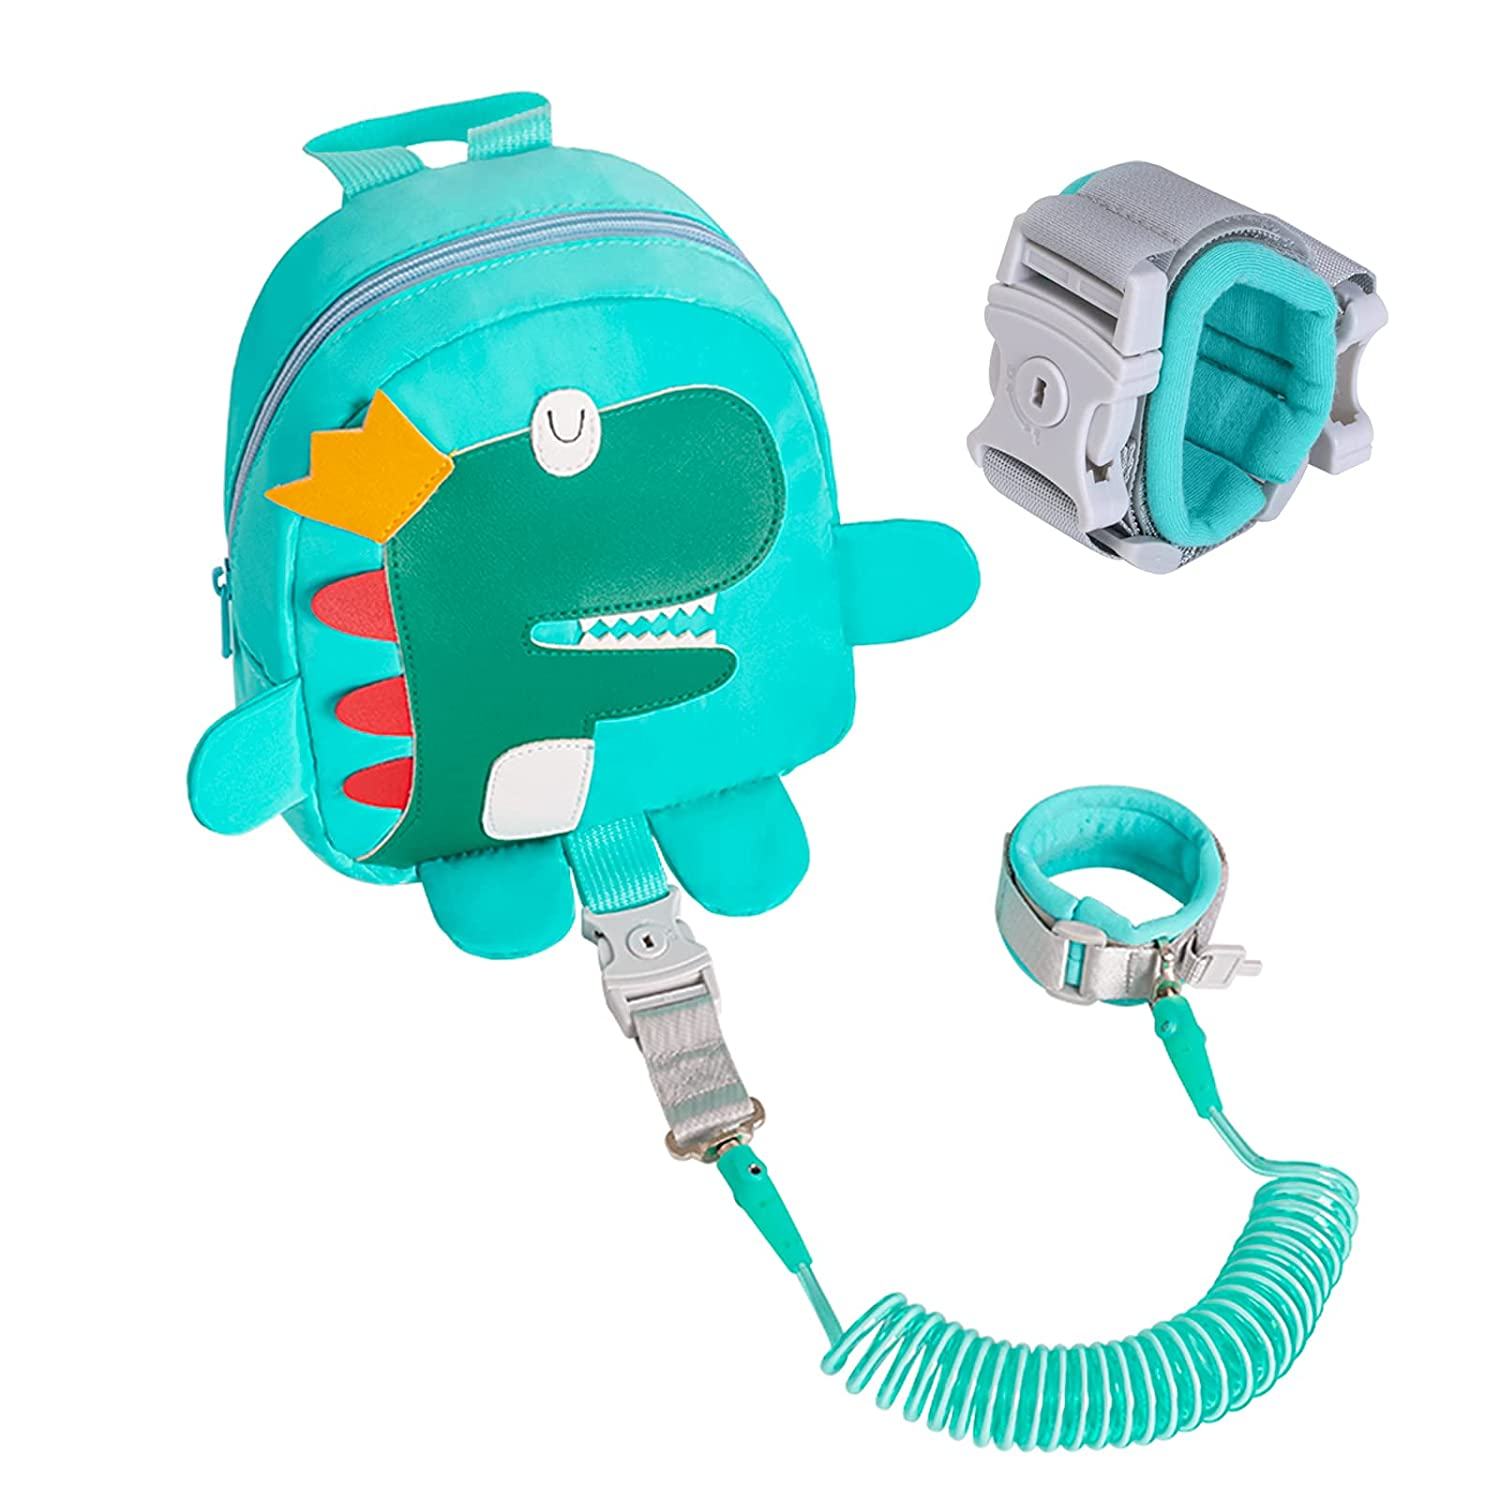 Cute Backpack Anti-Lost Rope,Toddler Safety Belt,Anti-Lost Rope Walking Safety Belt with Key Lock,Child Safety Belt,Baby Protection Belt,Length 8.2 feet,Dinosaur